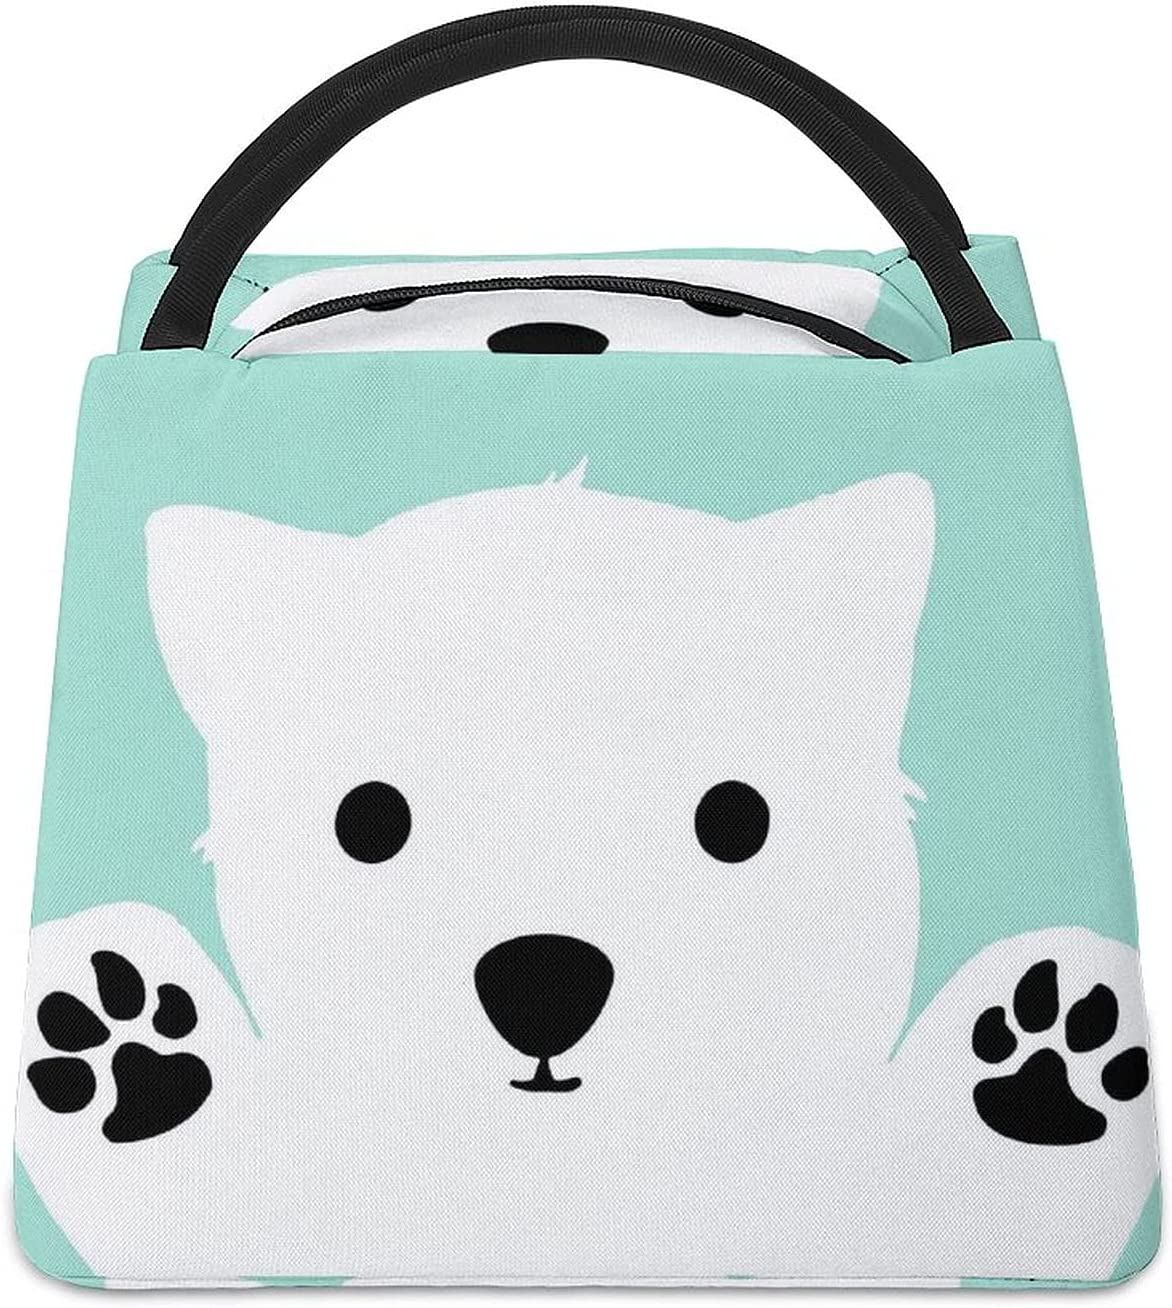 Hug Baby Polar Bear Insulated Lunch OFFicial Tote Box Bag Work For Many popular brands S Meal